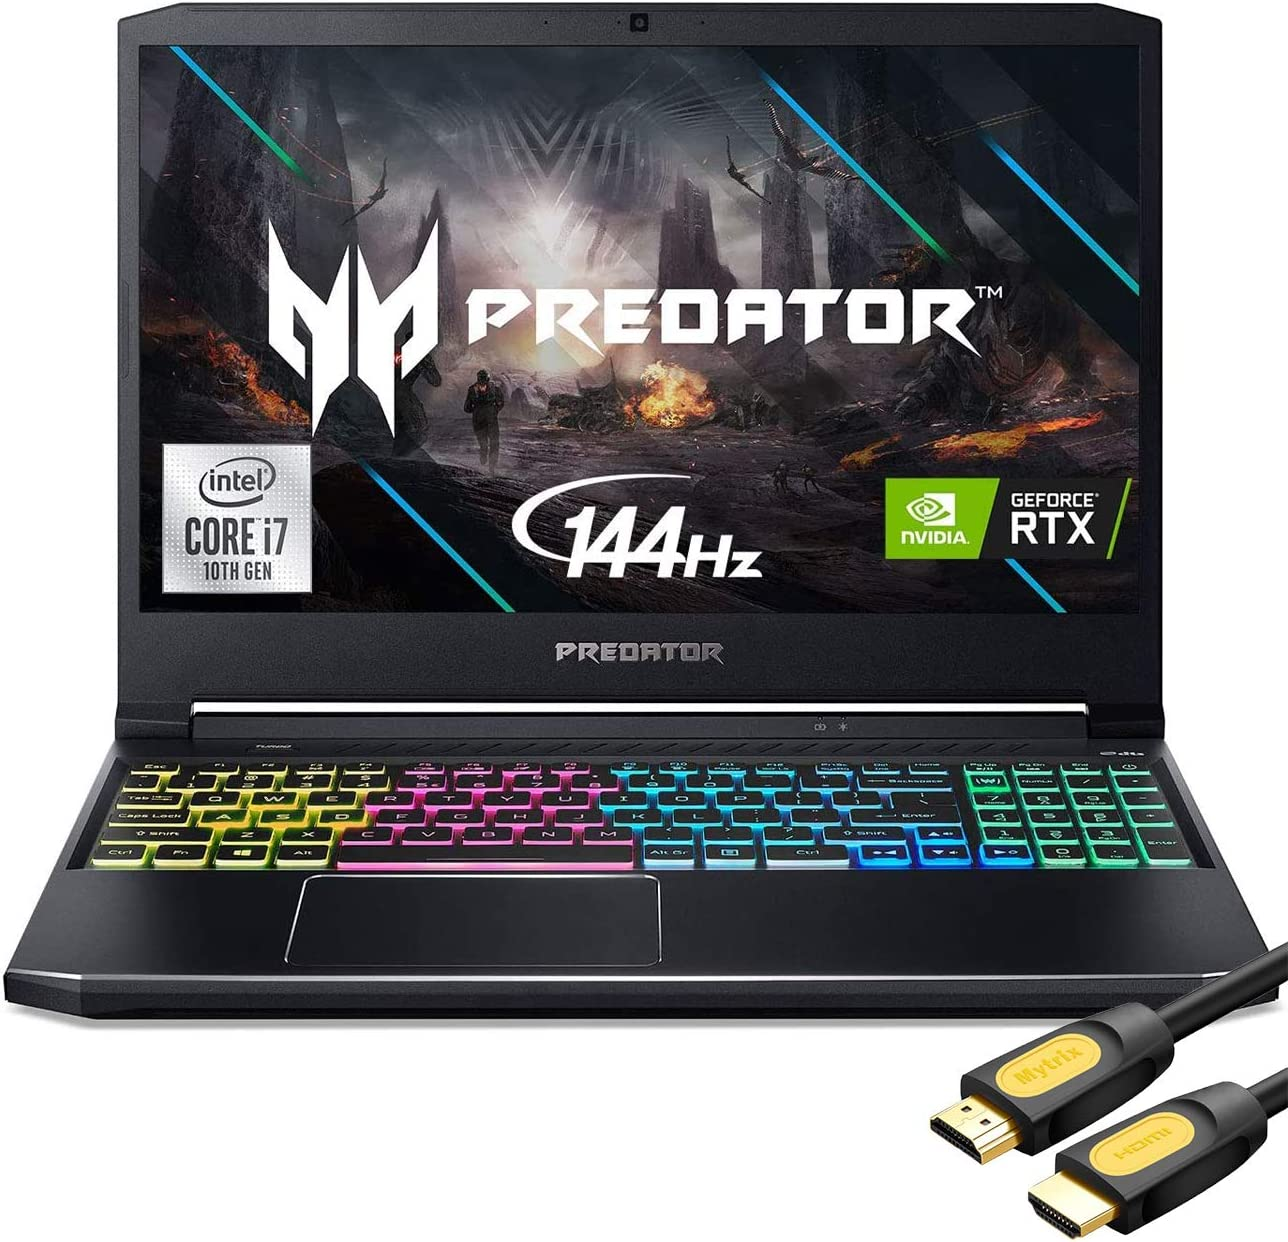 "Acer Predator Helios 300 144Hz Gaming Laptop, 15.6"" 3ms IPS FHD, RTX 2060 OC, i7-10750H 6-Cores up to 5.00 GHz, 32GB RAM, 2TB SSD, Killer Network, RGB KB, WiFi 6, Mytrix HDMI Cable, Win 10"